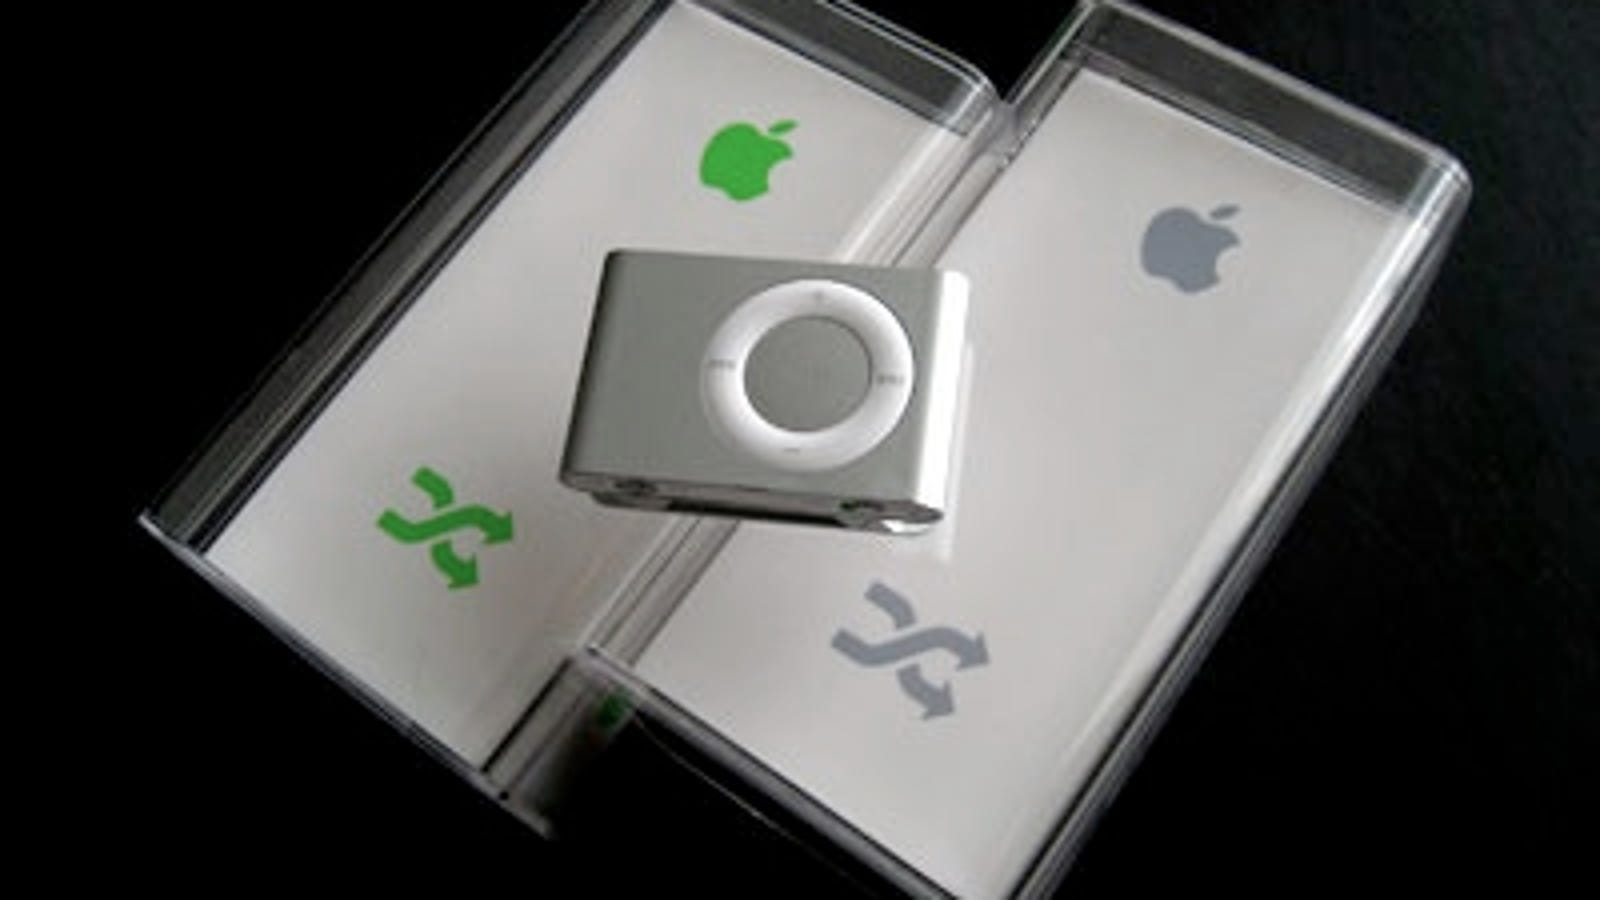 earbuds sleeping noise canceling - Get the Latest iPod shuffle Earbuds: Telling the Old Box vs. the New